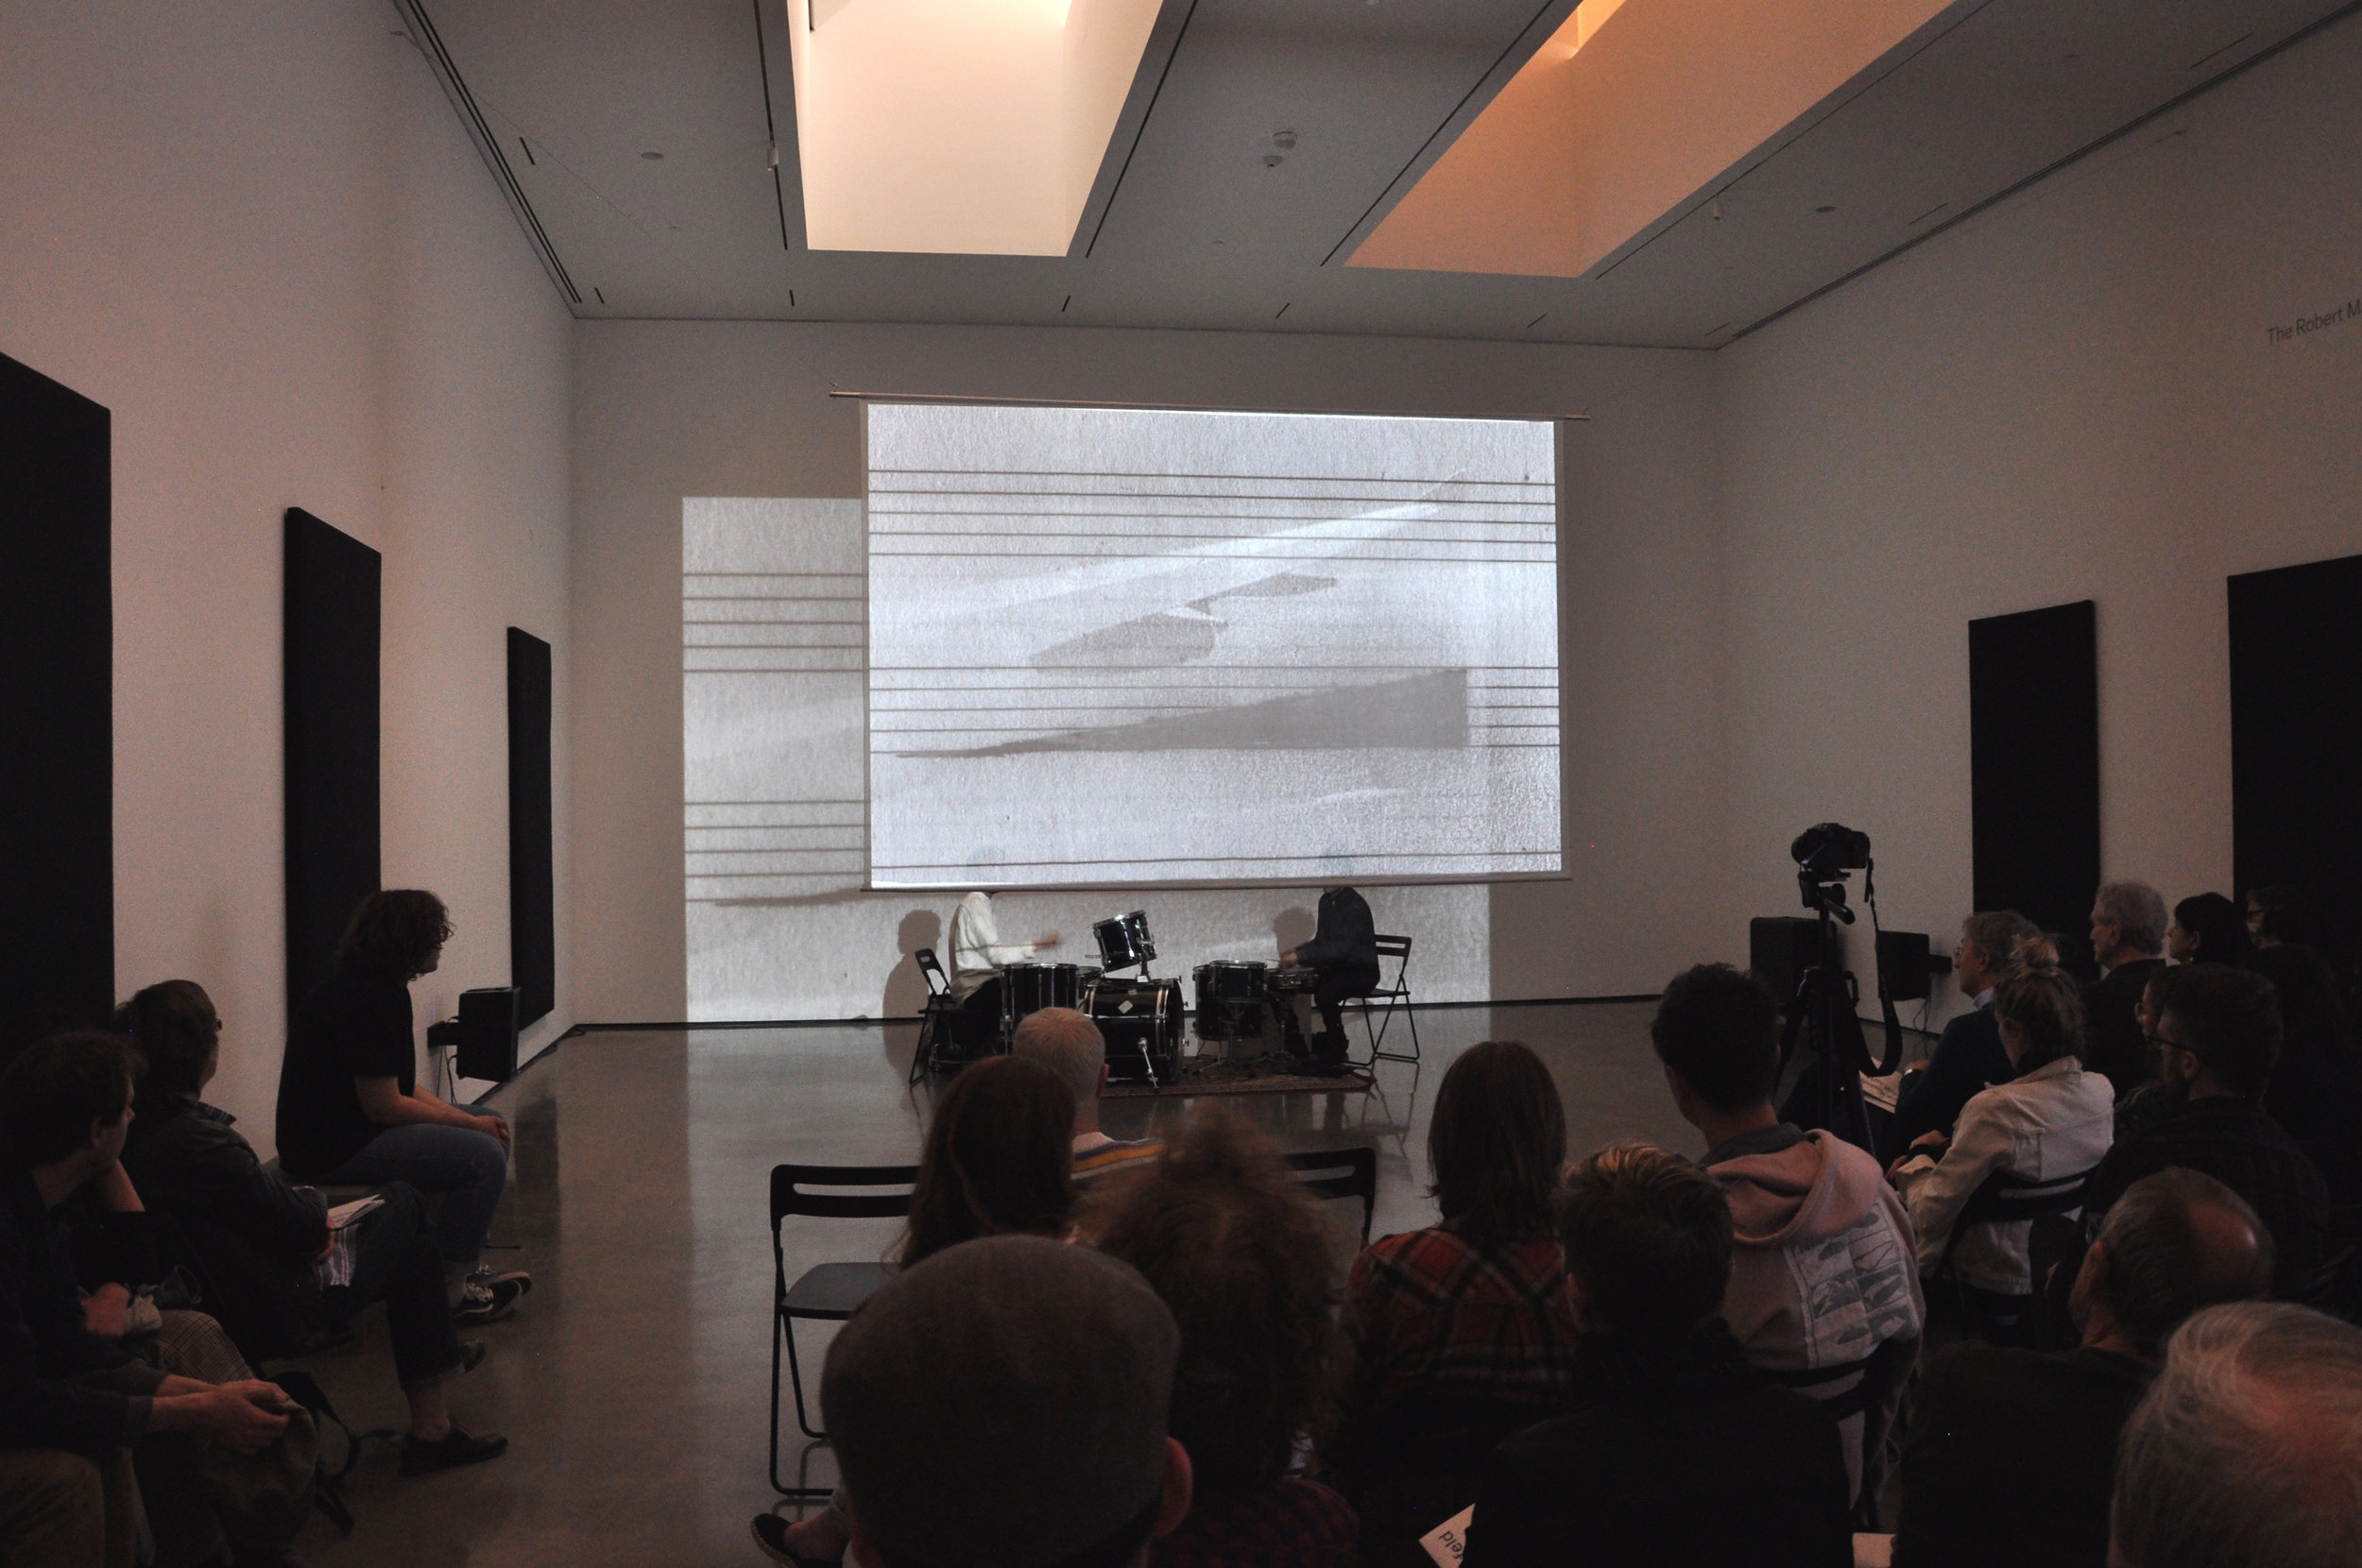 Performance of  My red red blood by Greg Fox and Elie Keszler, Bard Center for Curatorial Studies, 2017